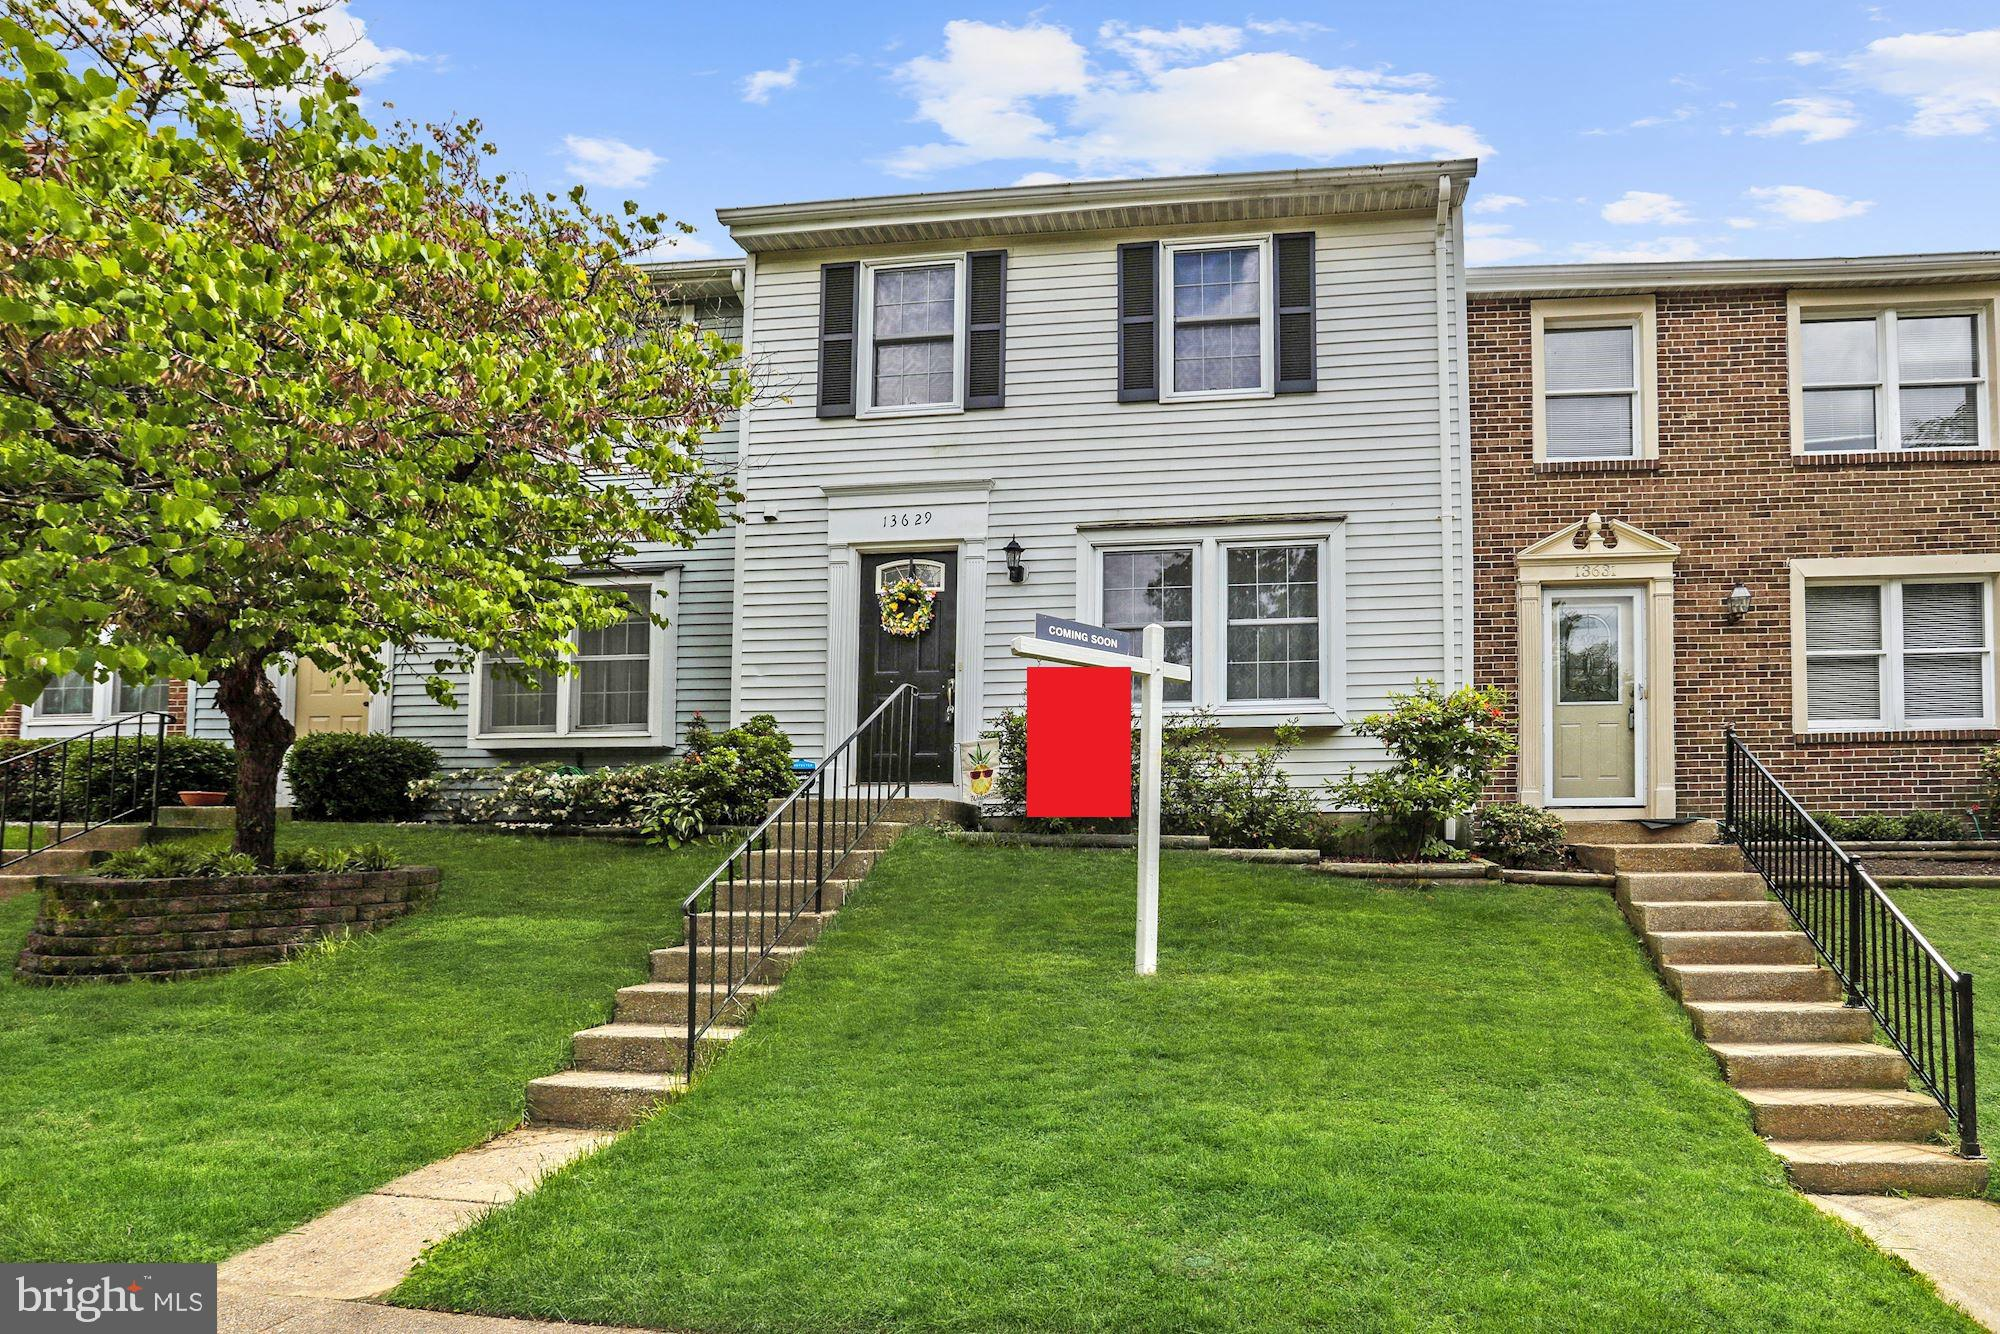 This immaculate 3 bedroom, 3 level townhouse in Rollingwood Village shows like a model. Updated kitchen with new cabinets, granite peninsula and newer stainless steel appliances. New half bathroom in the basement. All new flooring on the main level. Lovely, private fenced in the backyard area. Within miles of shopping, restaurants, I-95 and commuter lots. Don~t miss this one!